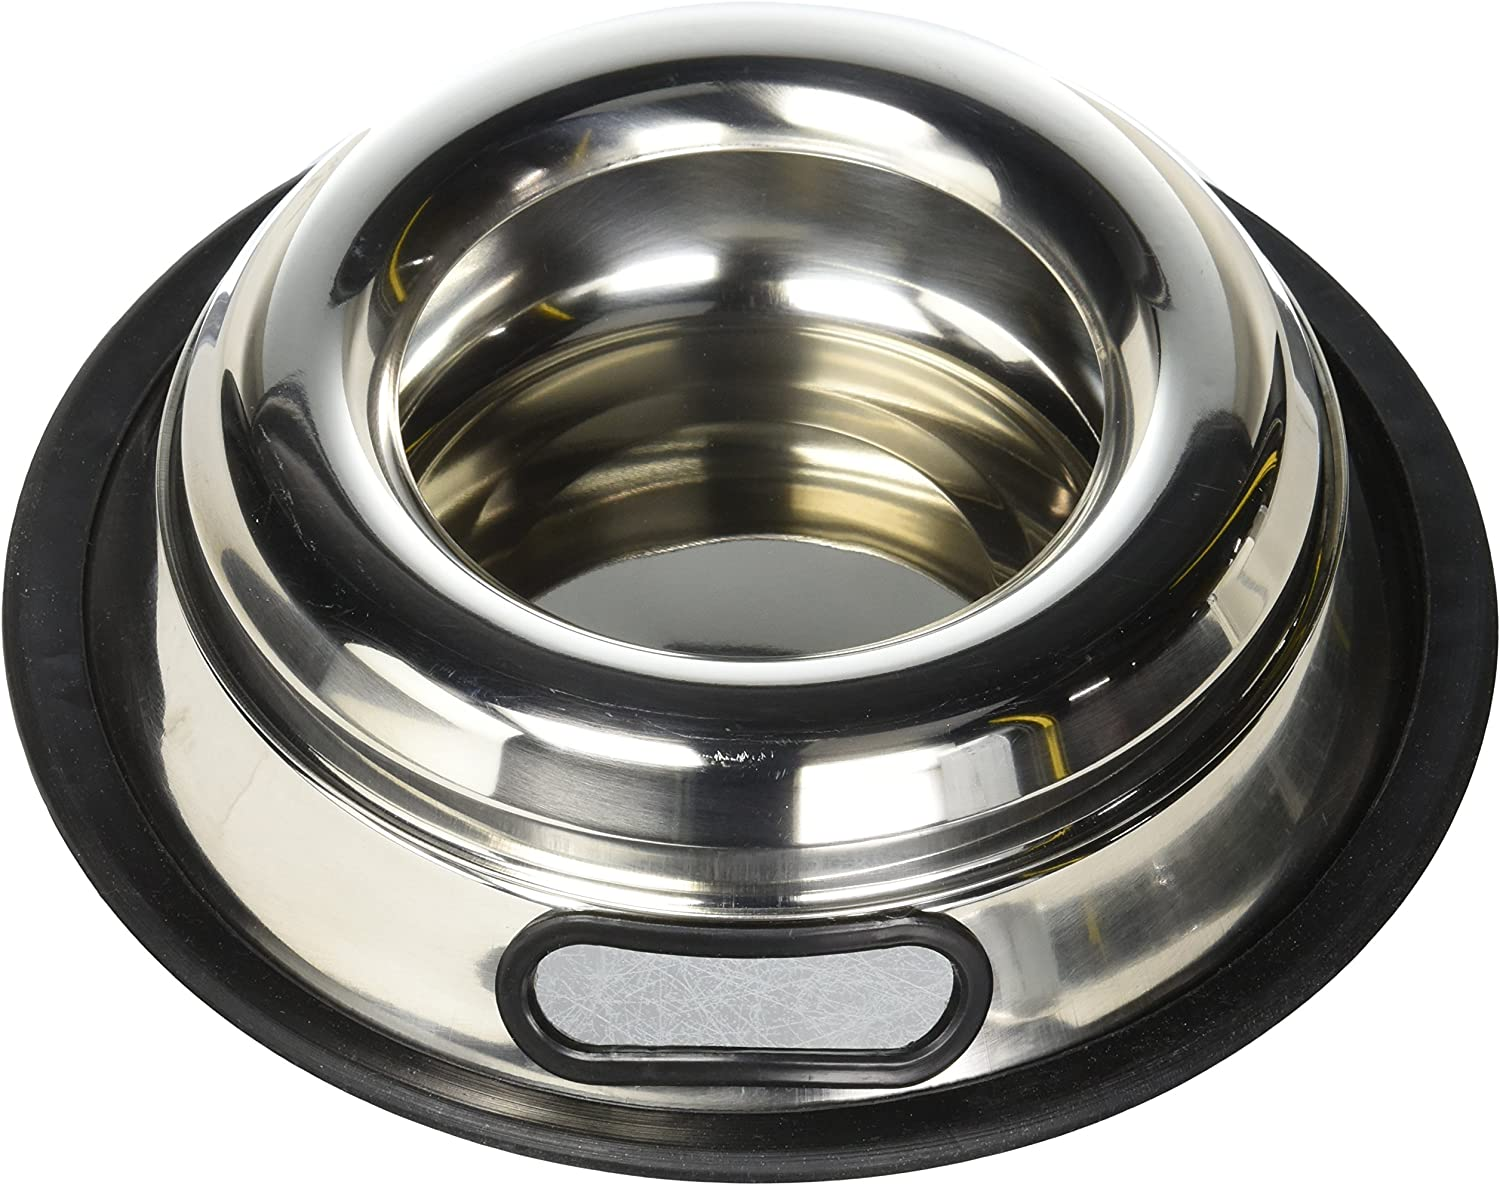 Indipets Stainless Steel Spill Proof Splash Free Dog Bowl - 16oz - Removable Cover and Easy Pick Up Grip Handle